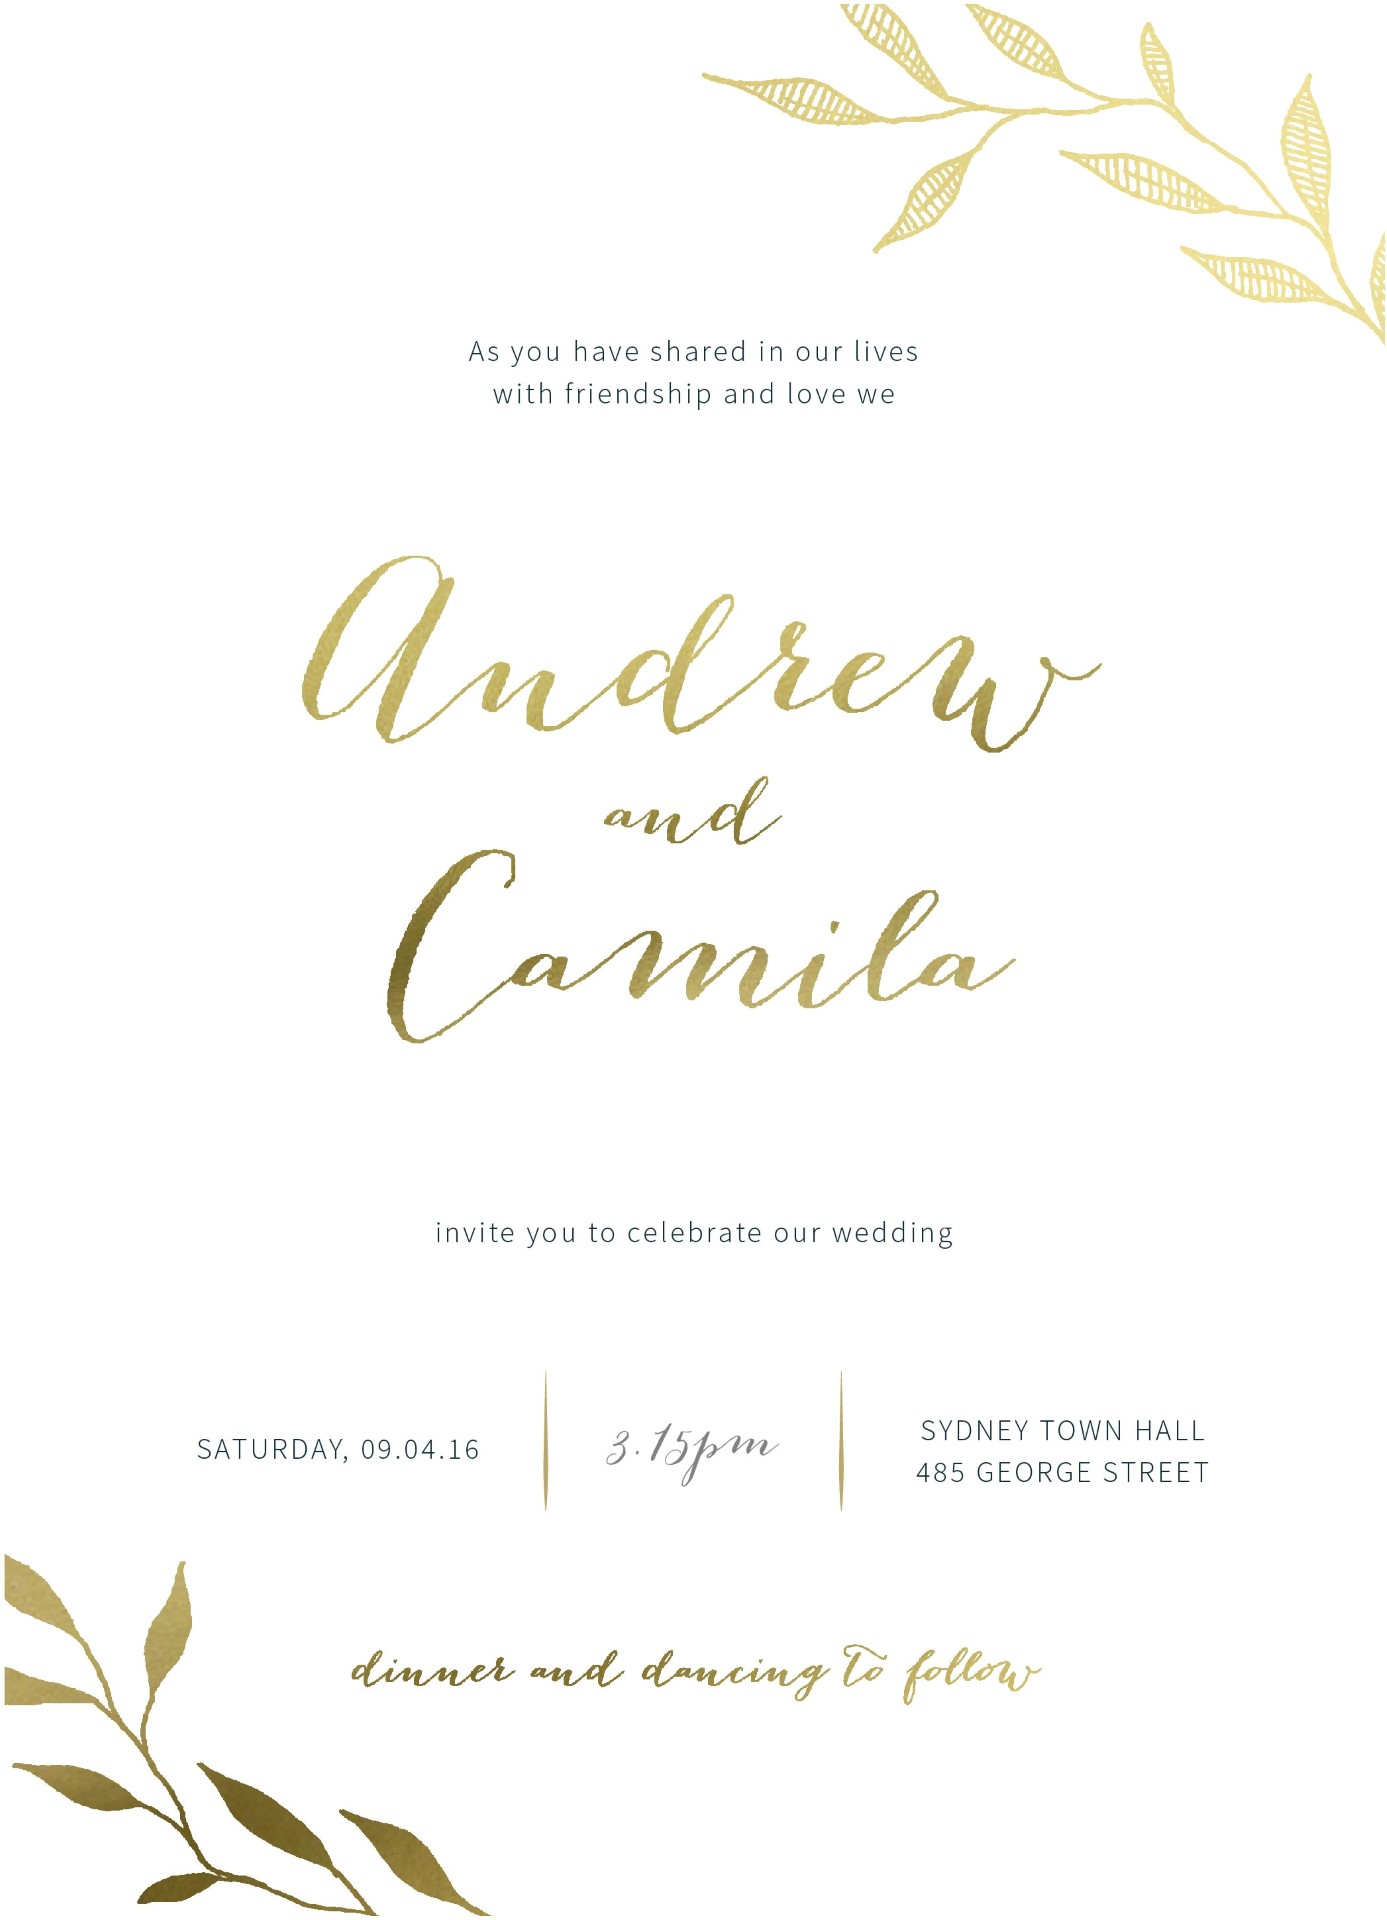 Wedding Invitations Online - Designs By Australian Designers